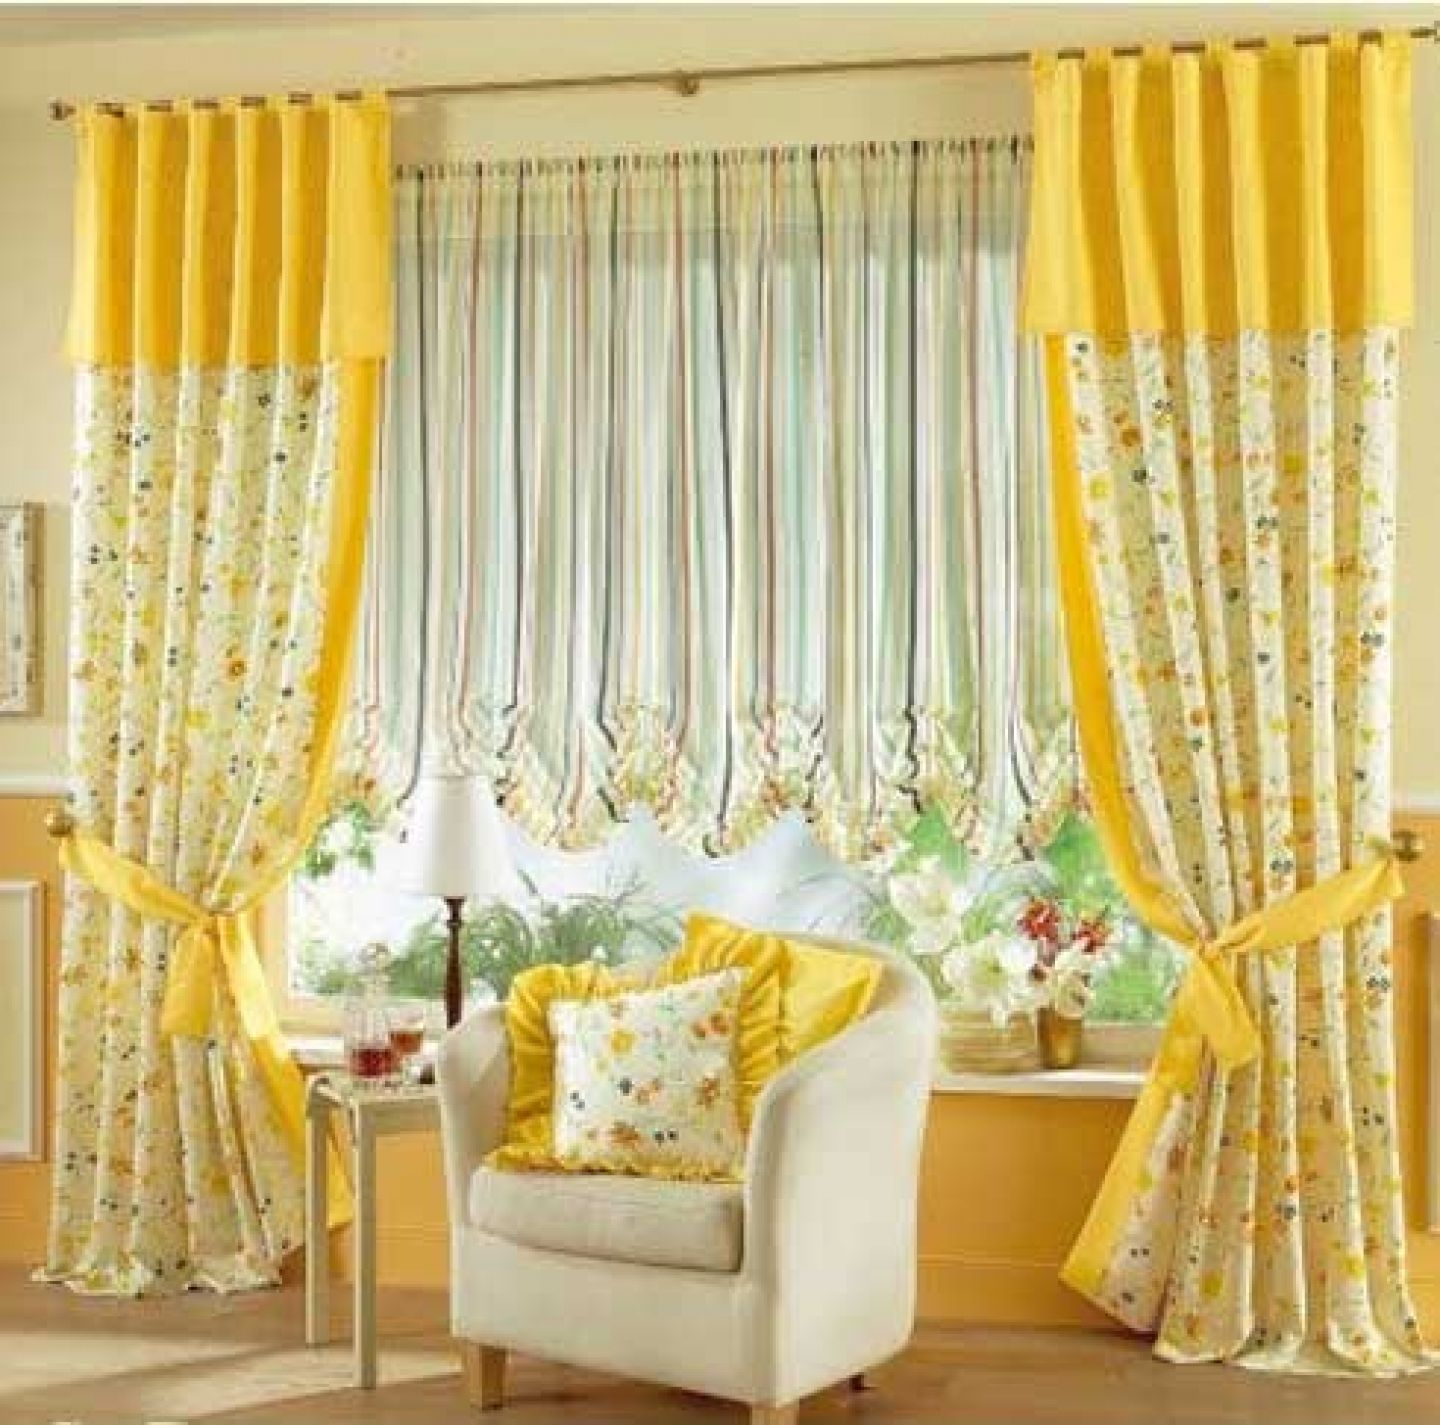 Latest New Curtains Home Decor Homeowner Curtains Living Room